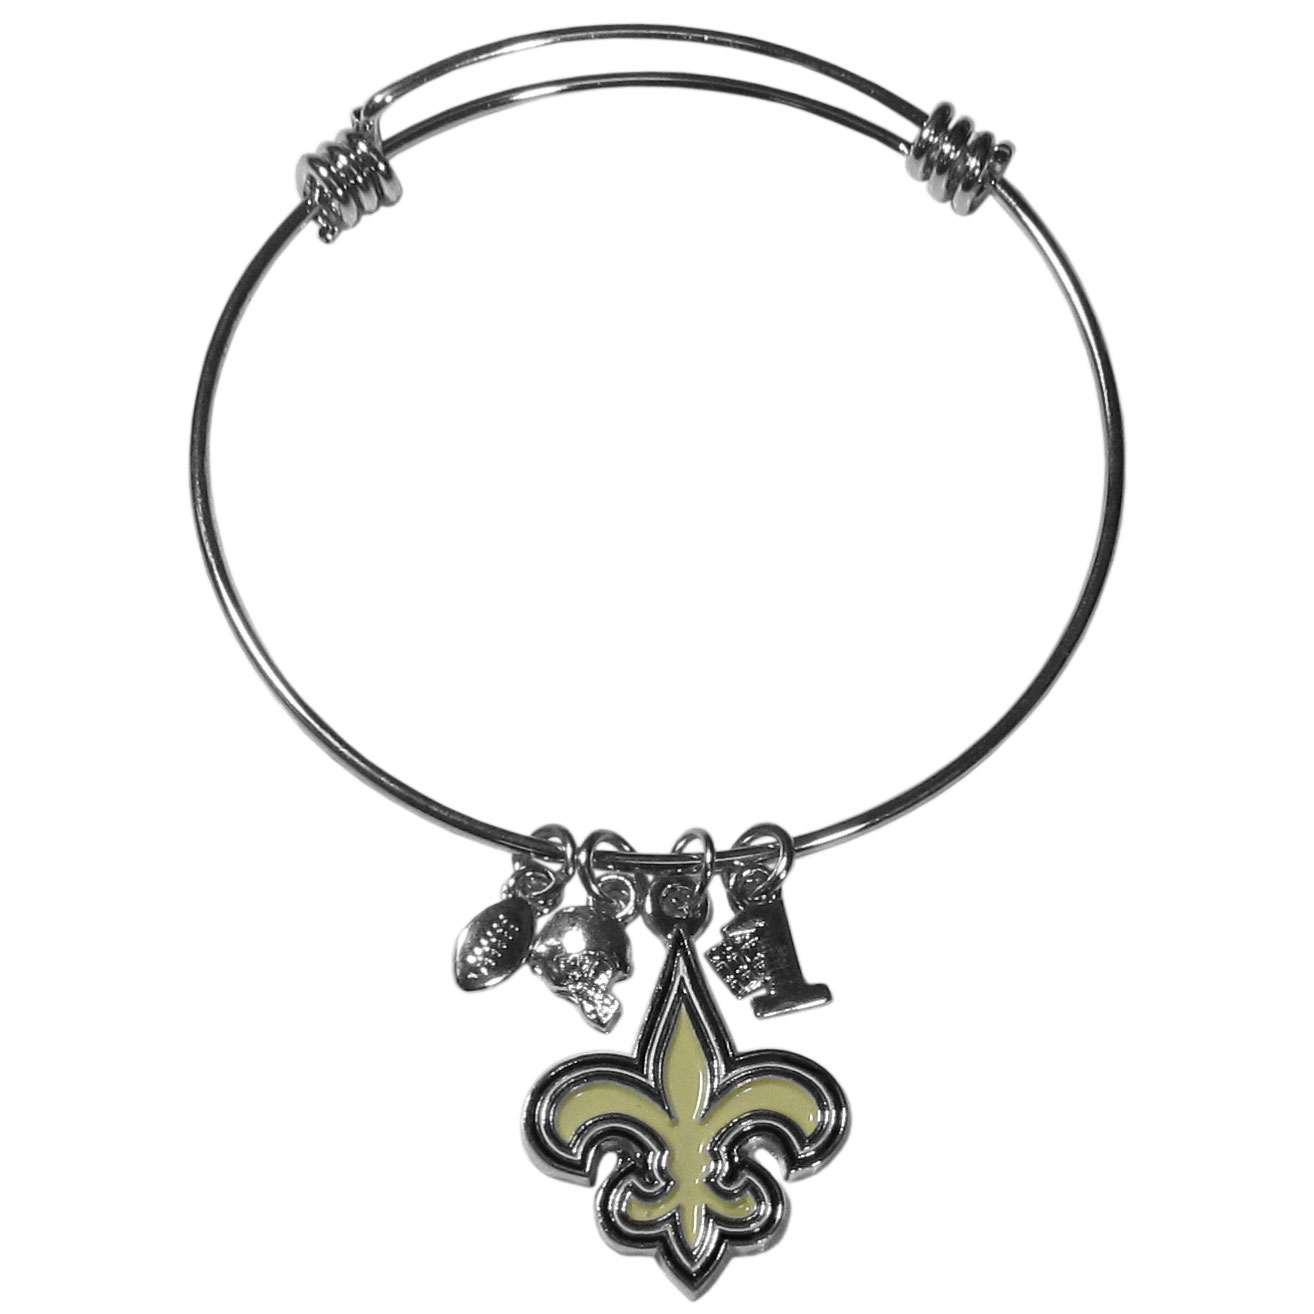 New Orleans Saints Charm Bangle Bracelet - Adjustable wire bracelets are all the rage and this New Orleans Saints bracelet matches the popular trend with your beloved team. The bracelet features 4 charms in total, each feature exceptional detail and the team charm has enameled team colors.